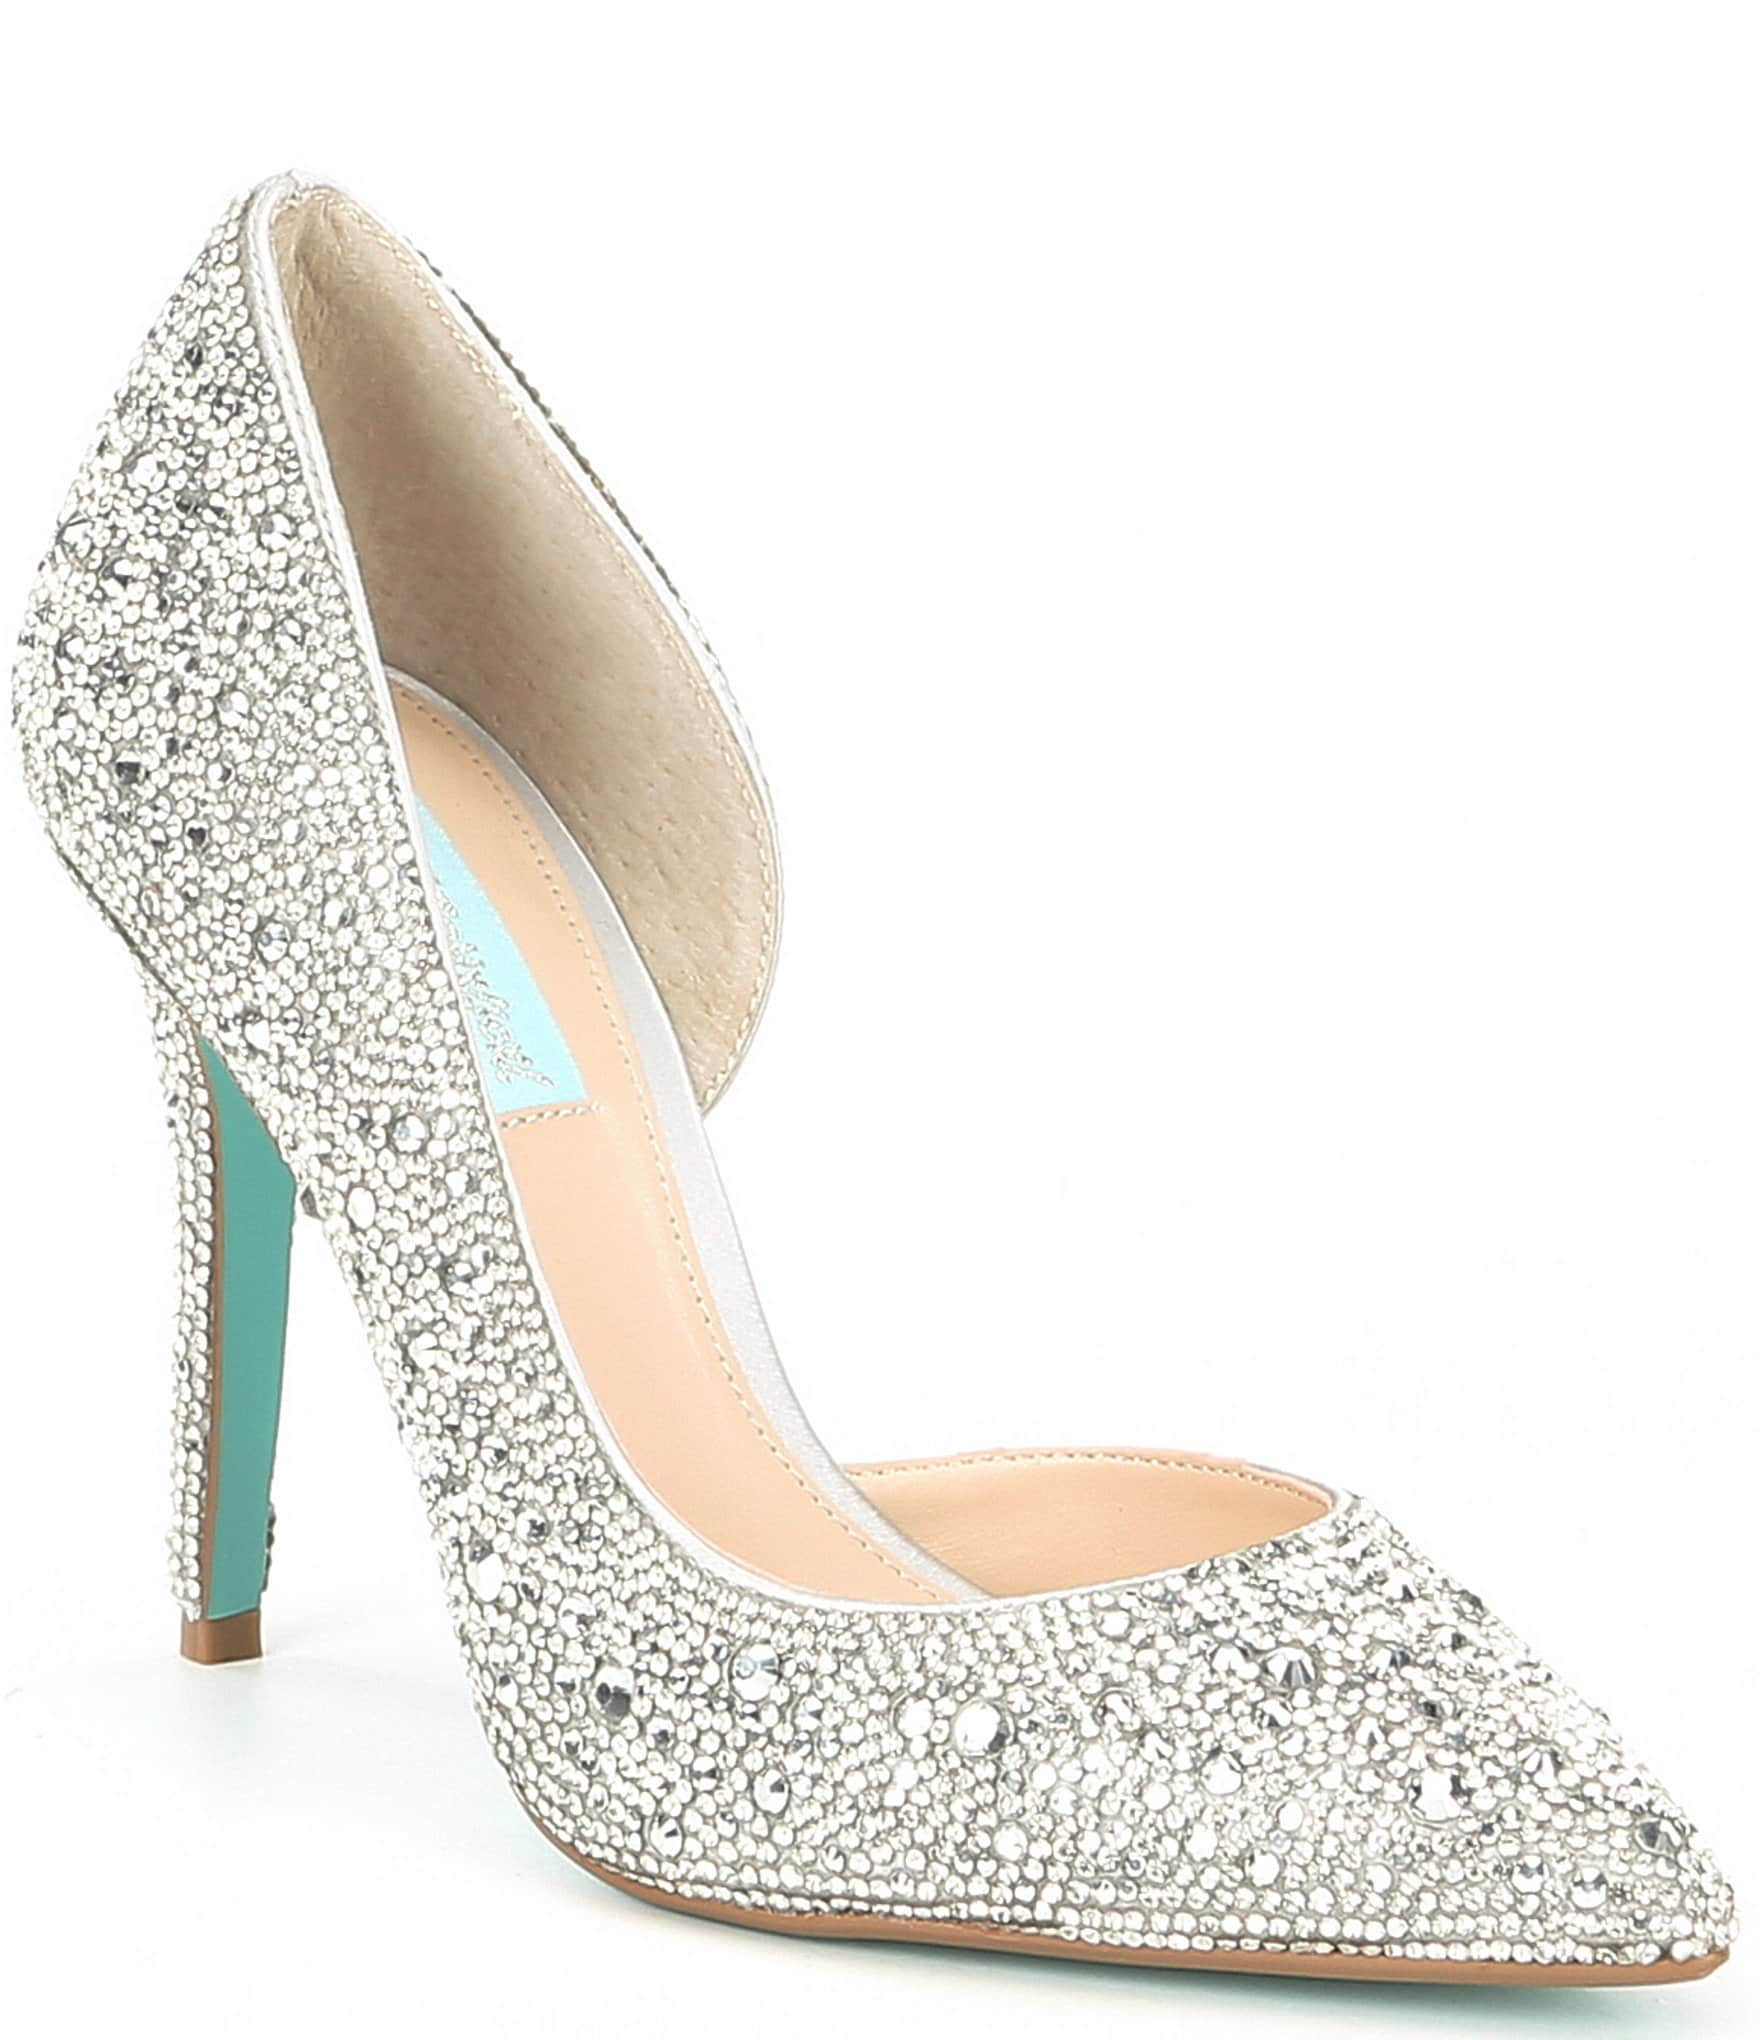 eada4422c4f57 Blue by Betsey Johnson Hazil Jeweled Pumps